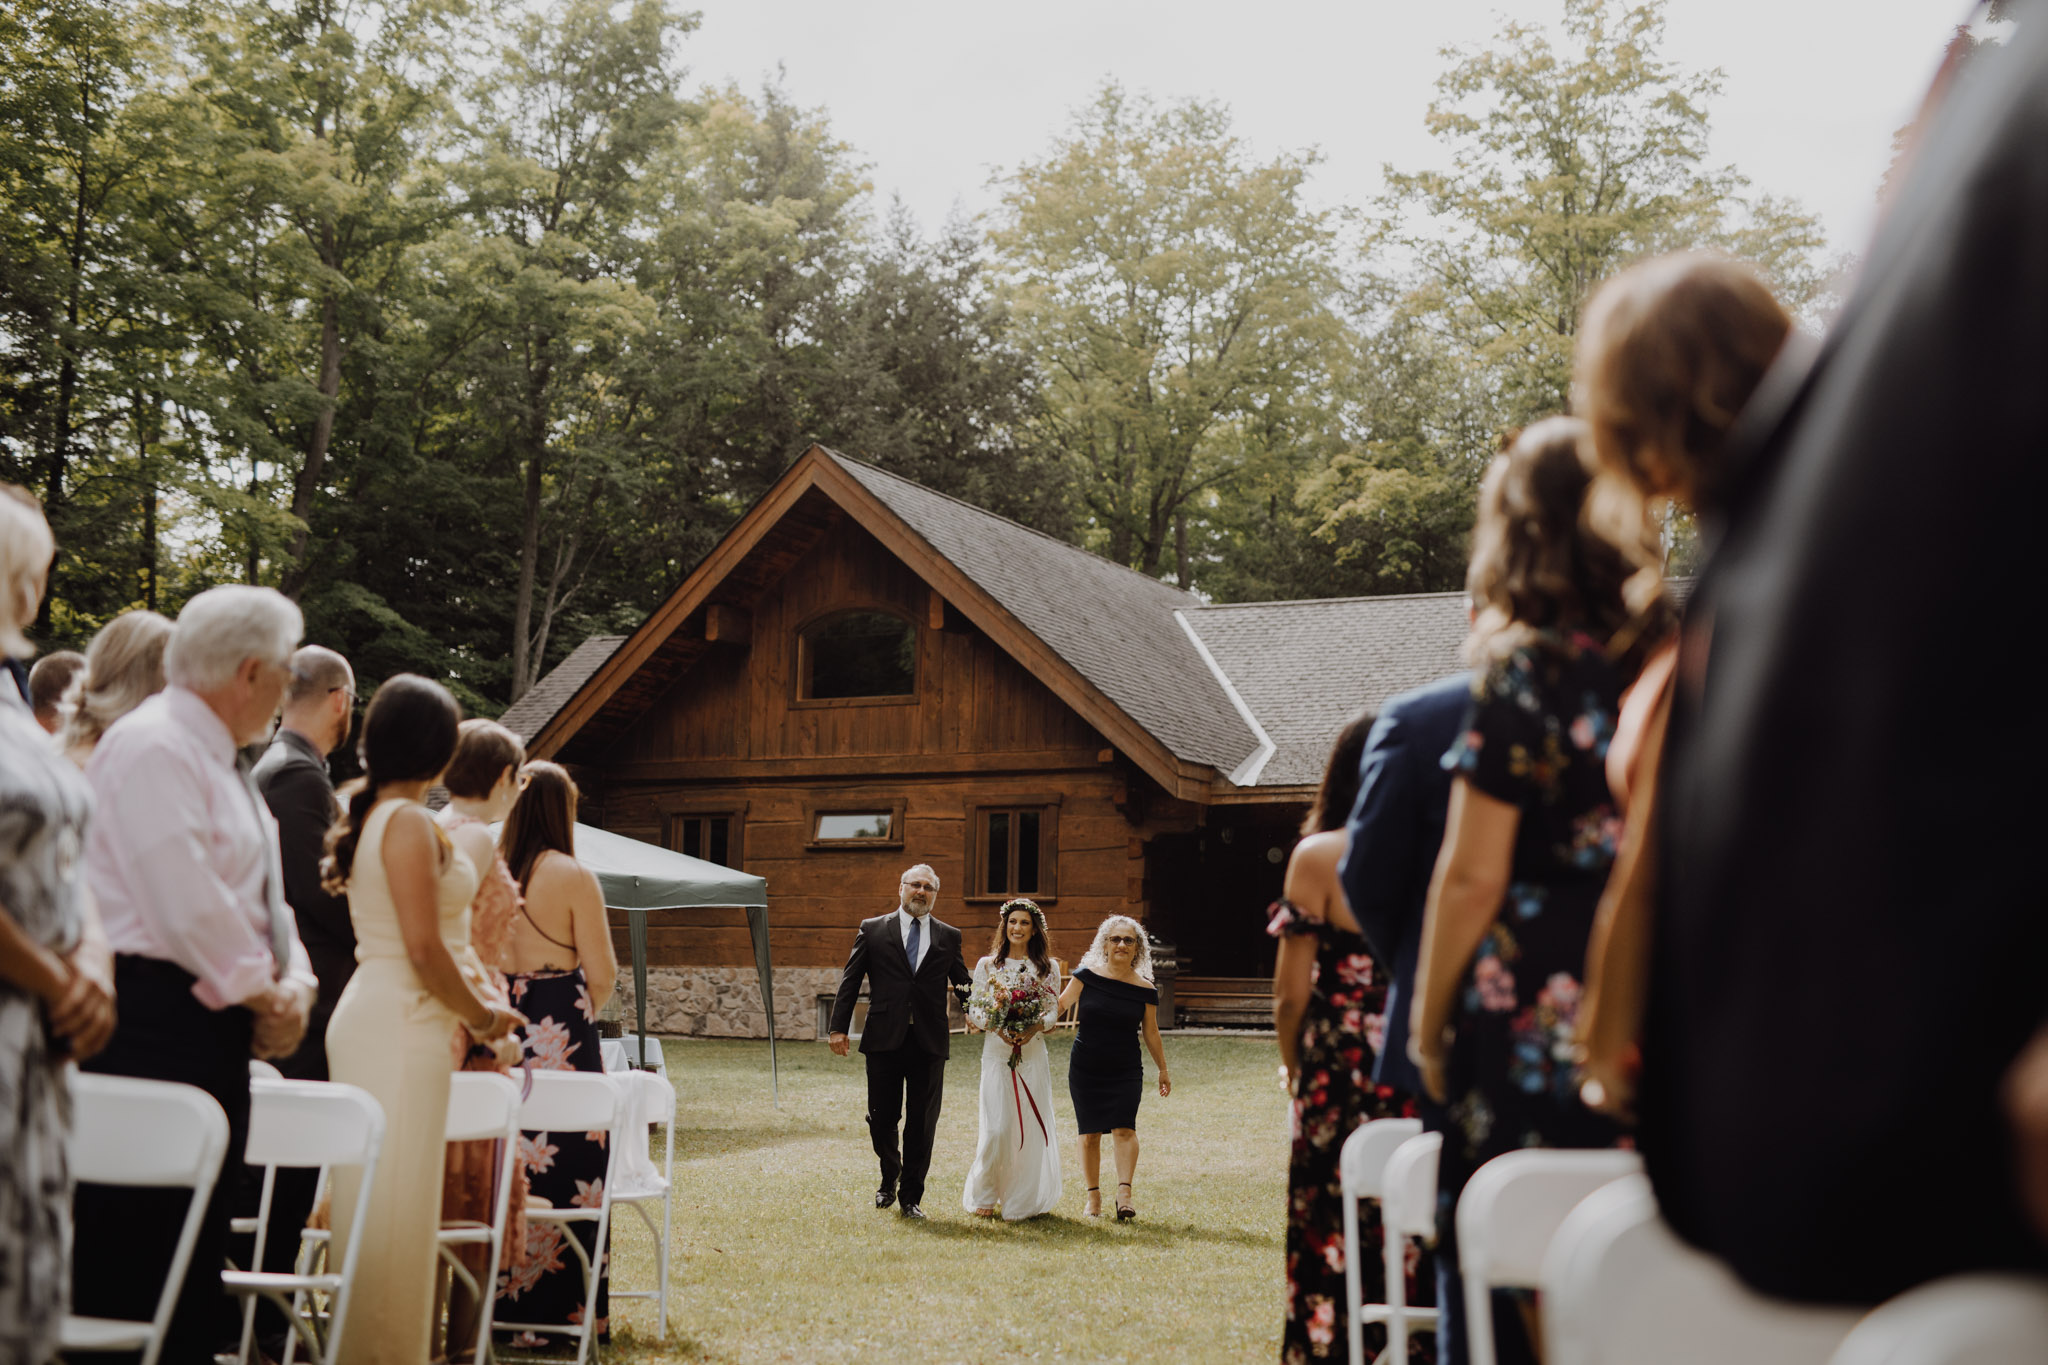 Outdoor Camp Wedding - bride walking down the aisle